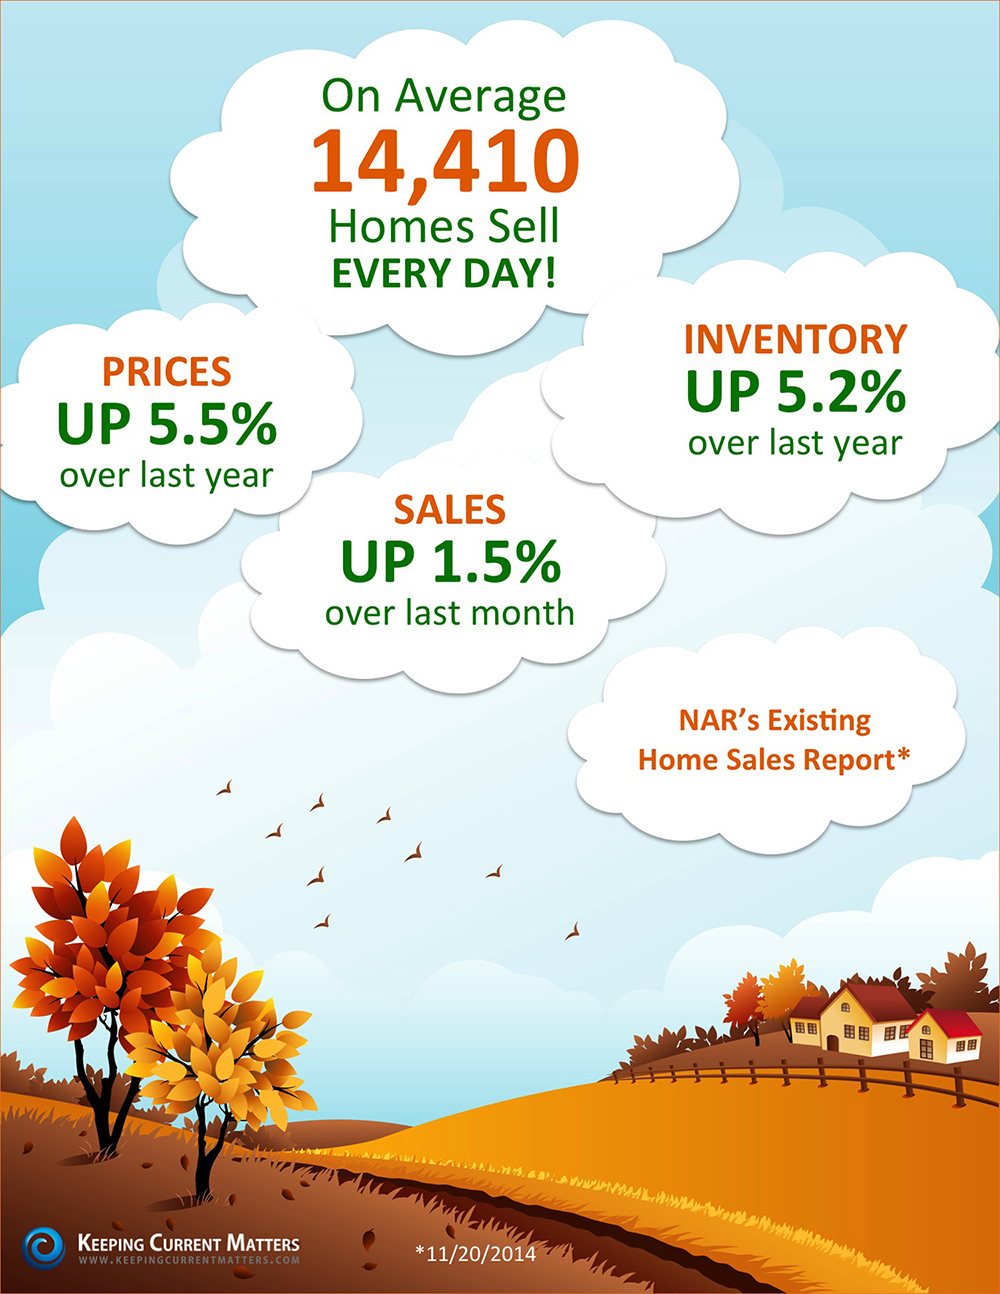 NARs-Existing-Home-Sales-Report